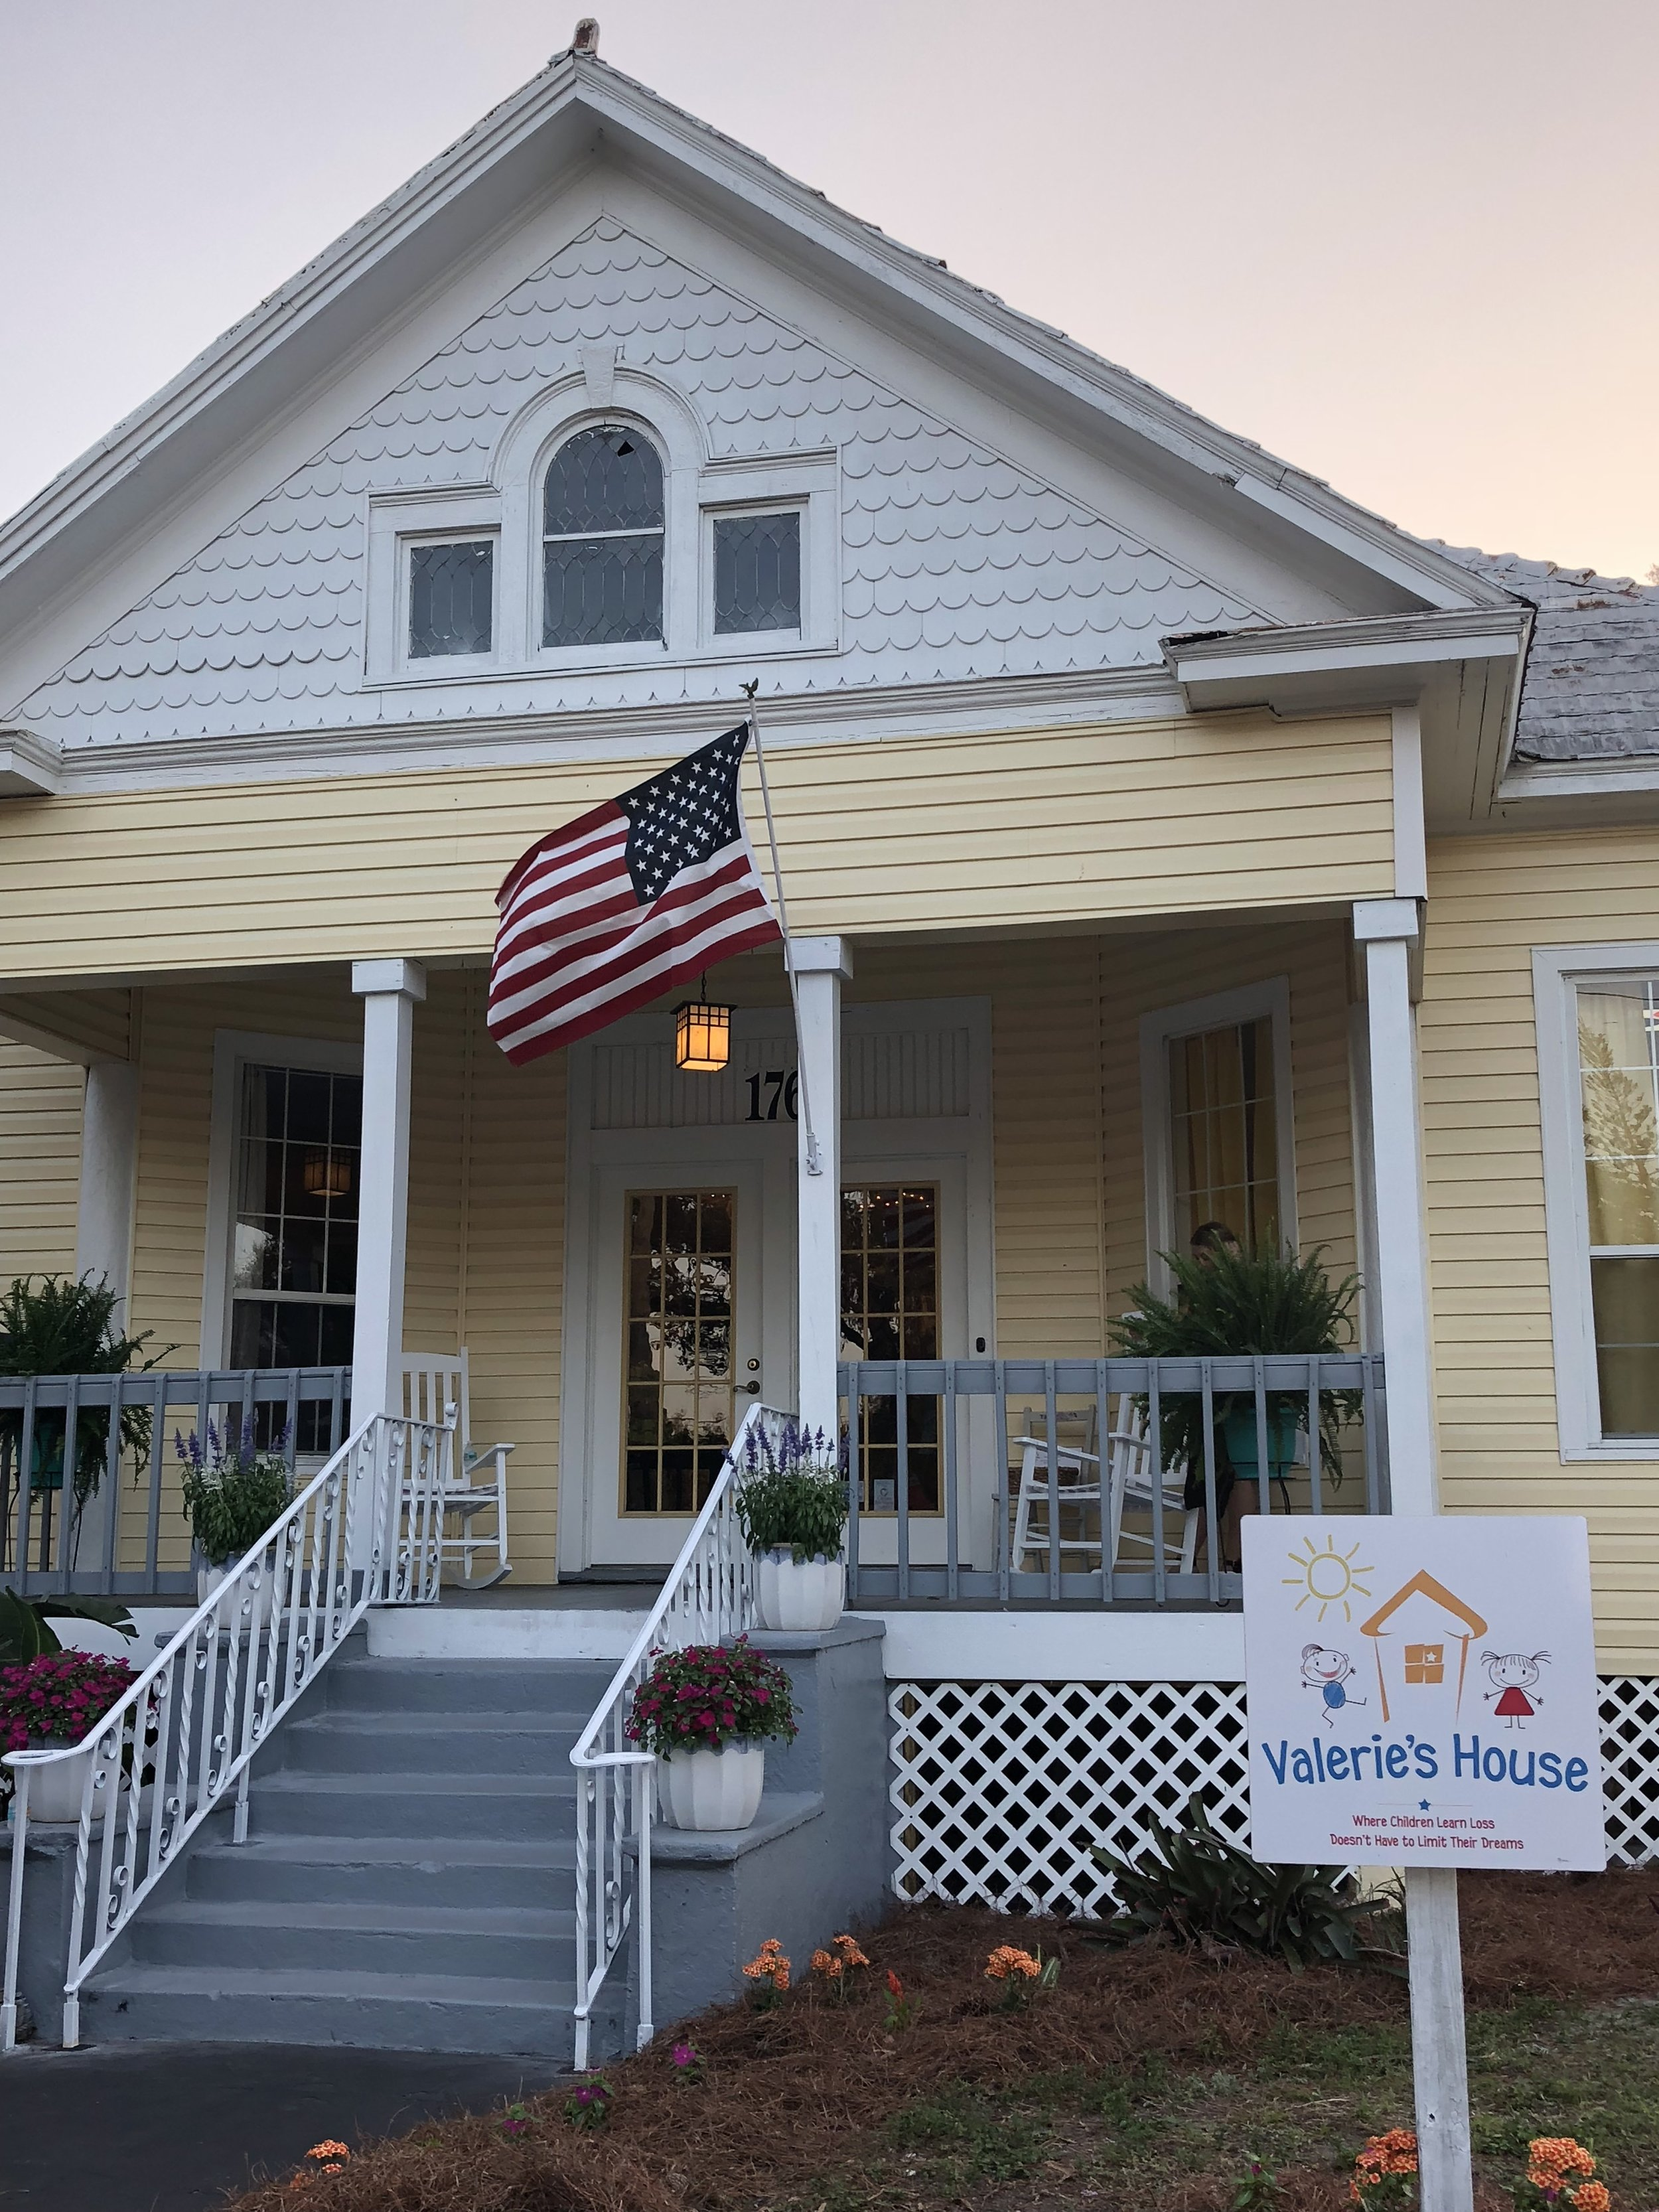 The two-story yellow and white Victorian house was originally built in 1910. After many years as the home of several early Fort Myers families, the house has been refurbished to accommodate the Valerie's House organization.